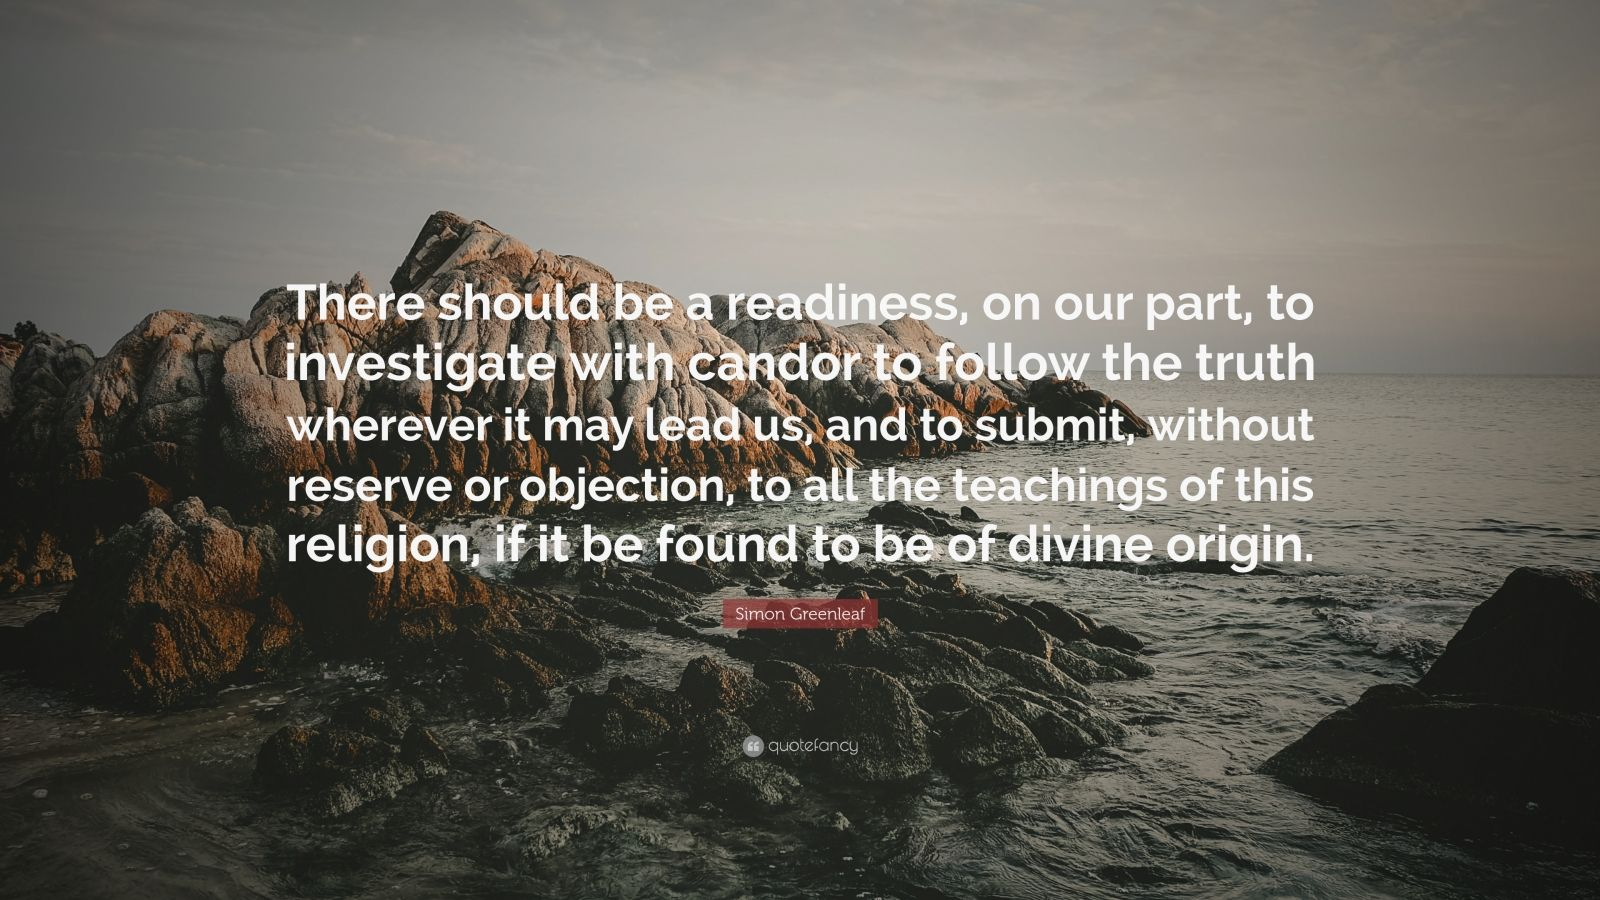 """Simon Greenleaf Quote: """"There should be a readiness, on our part, to investigate with candor to follow the truth wherever it may lead us, and to submit, without reserve or objection, to all the teachings of this religion, if it be found to be of divine origin."""""""